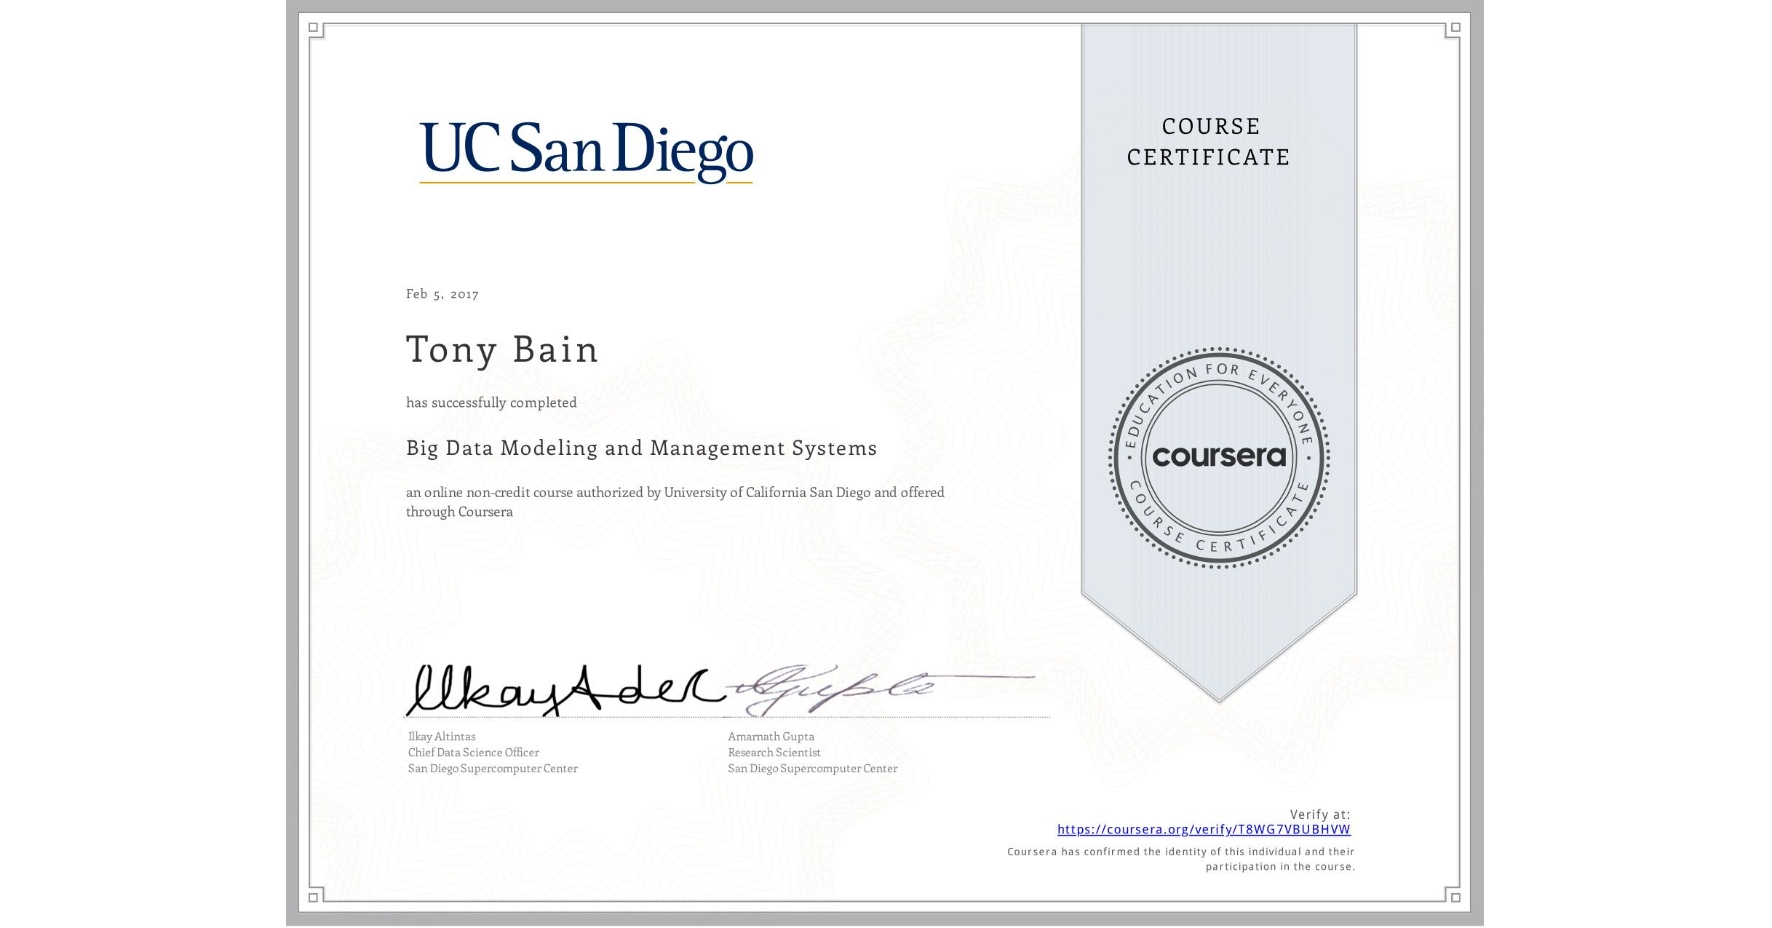 View certificate for Tony Bain, Big Data Modeling and Management Systems, an online non-credit course authorized by University of California San Diego and offered through Coursera